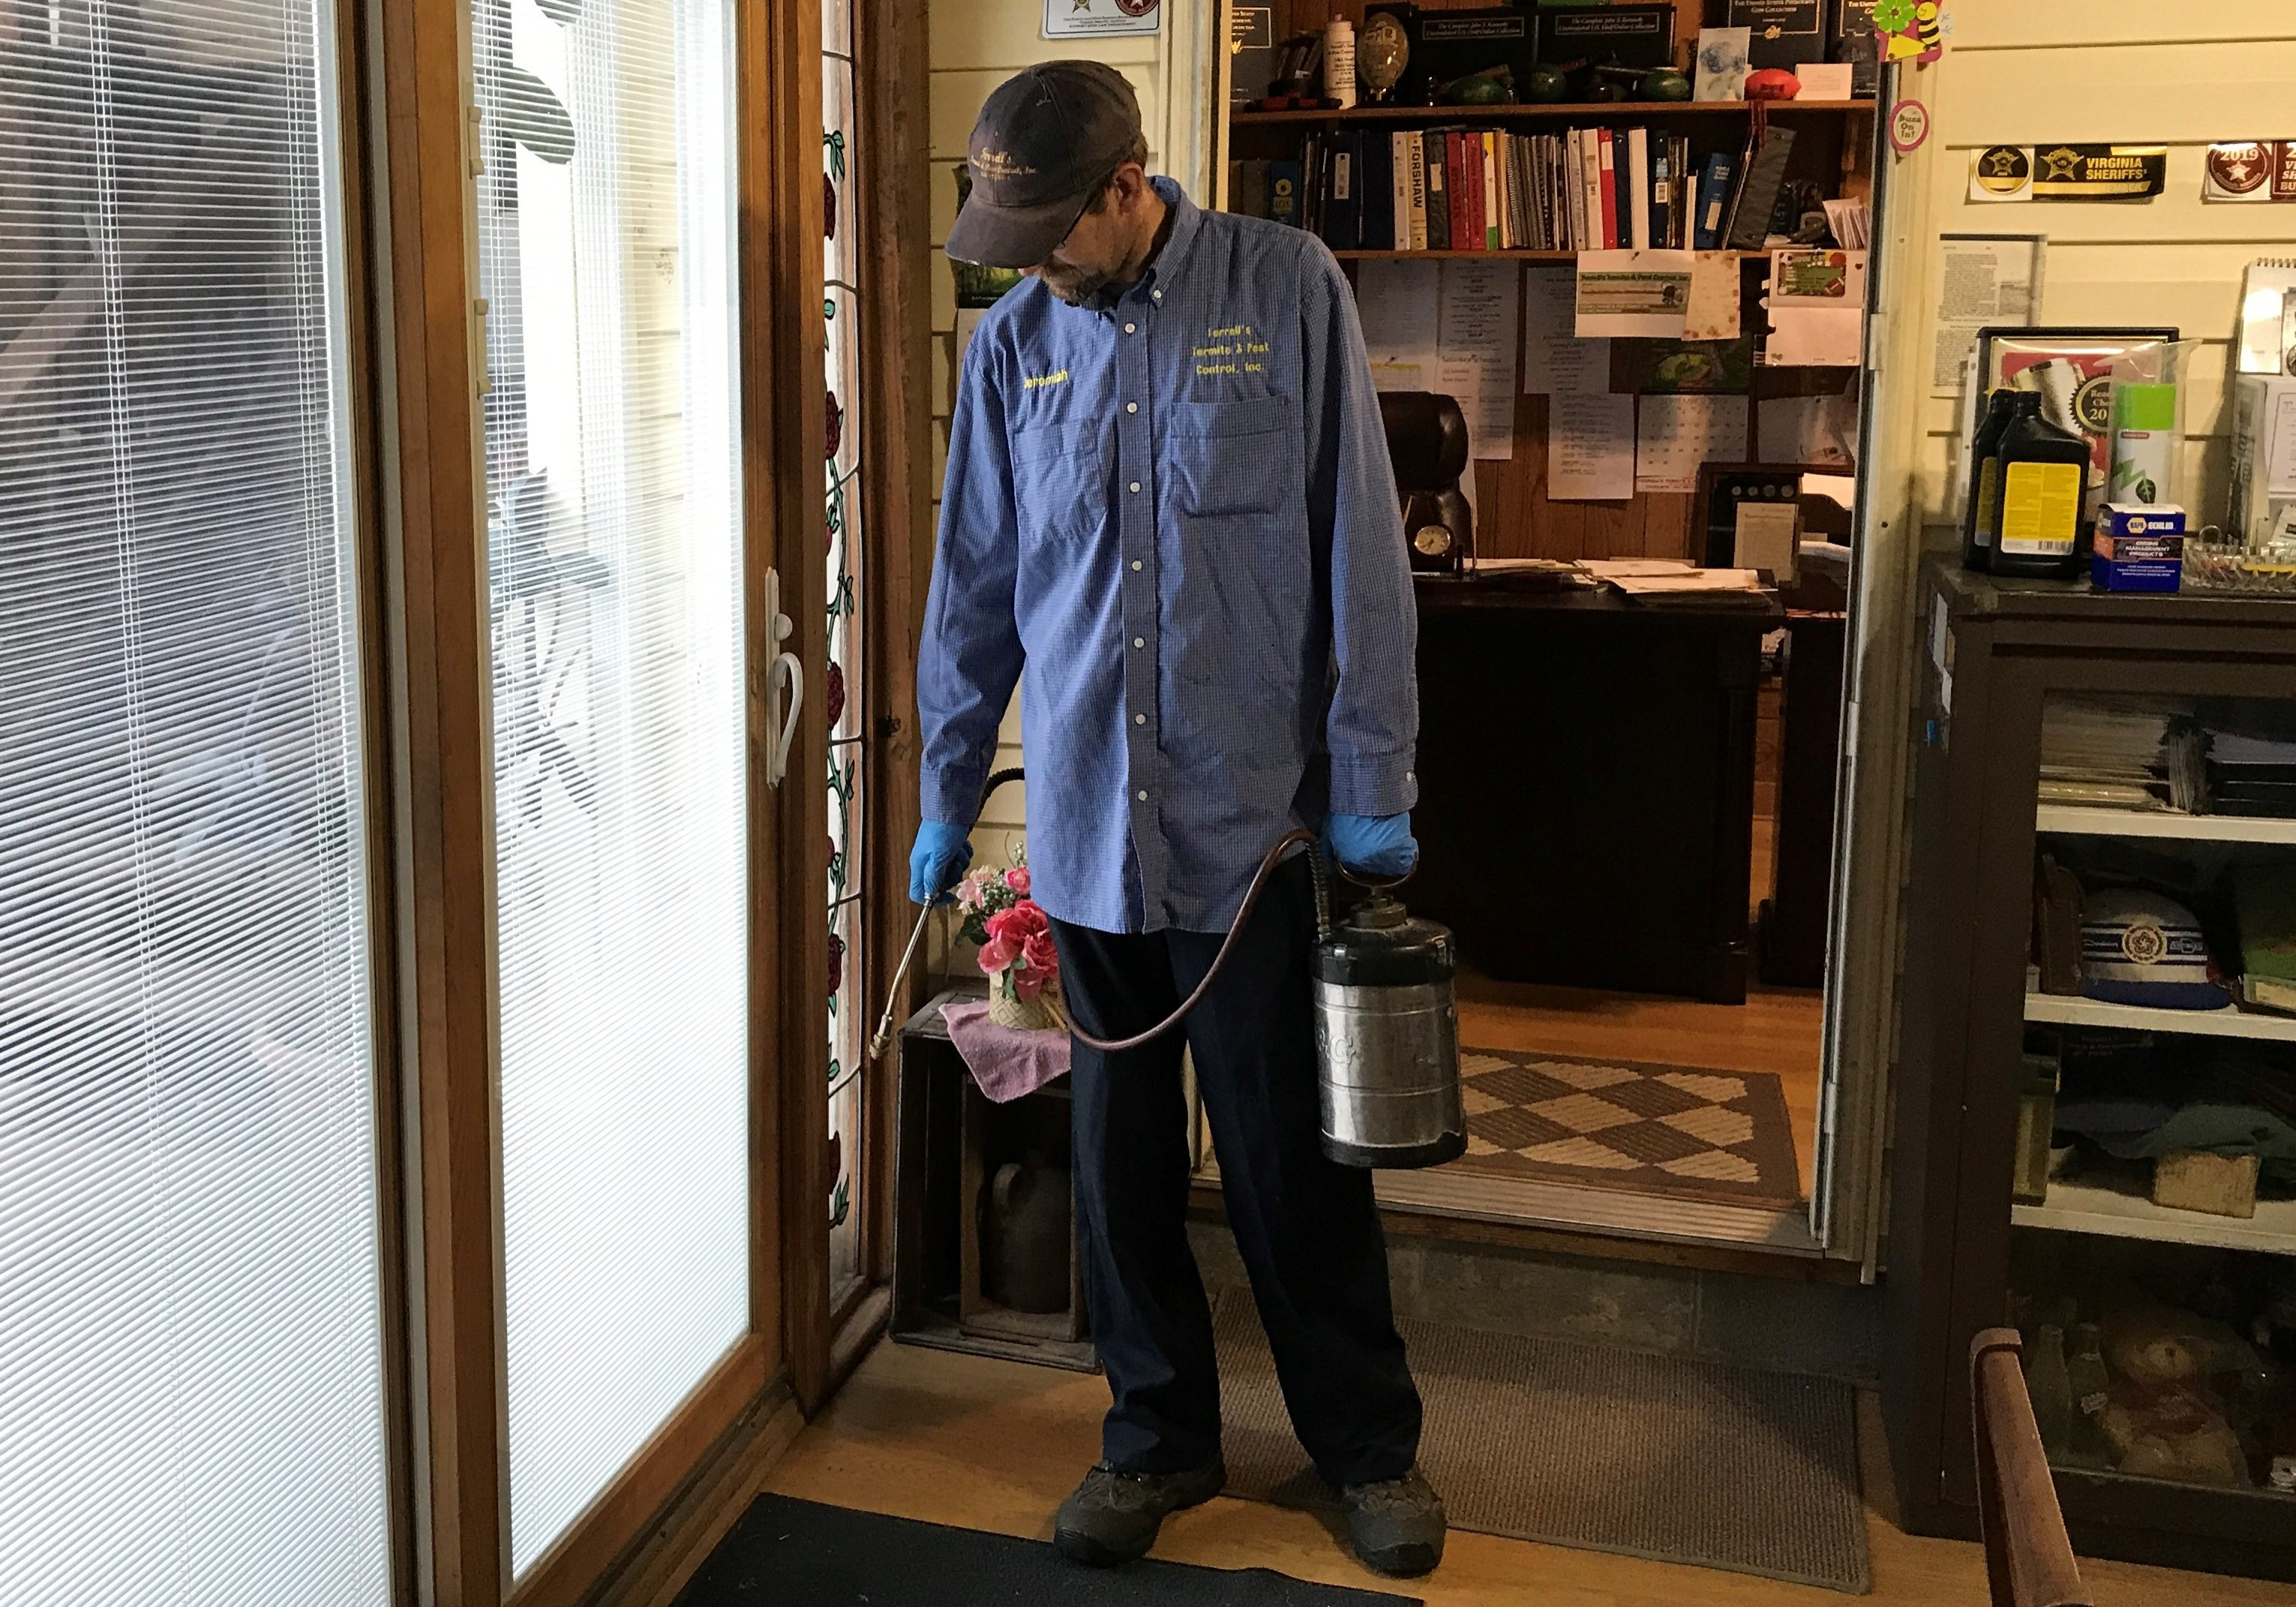 Pest control technician spraying for insects